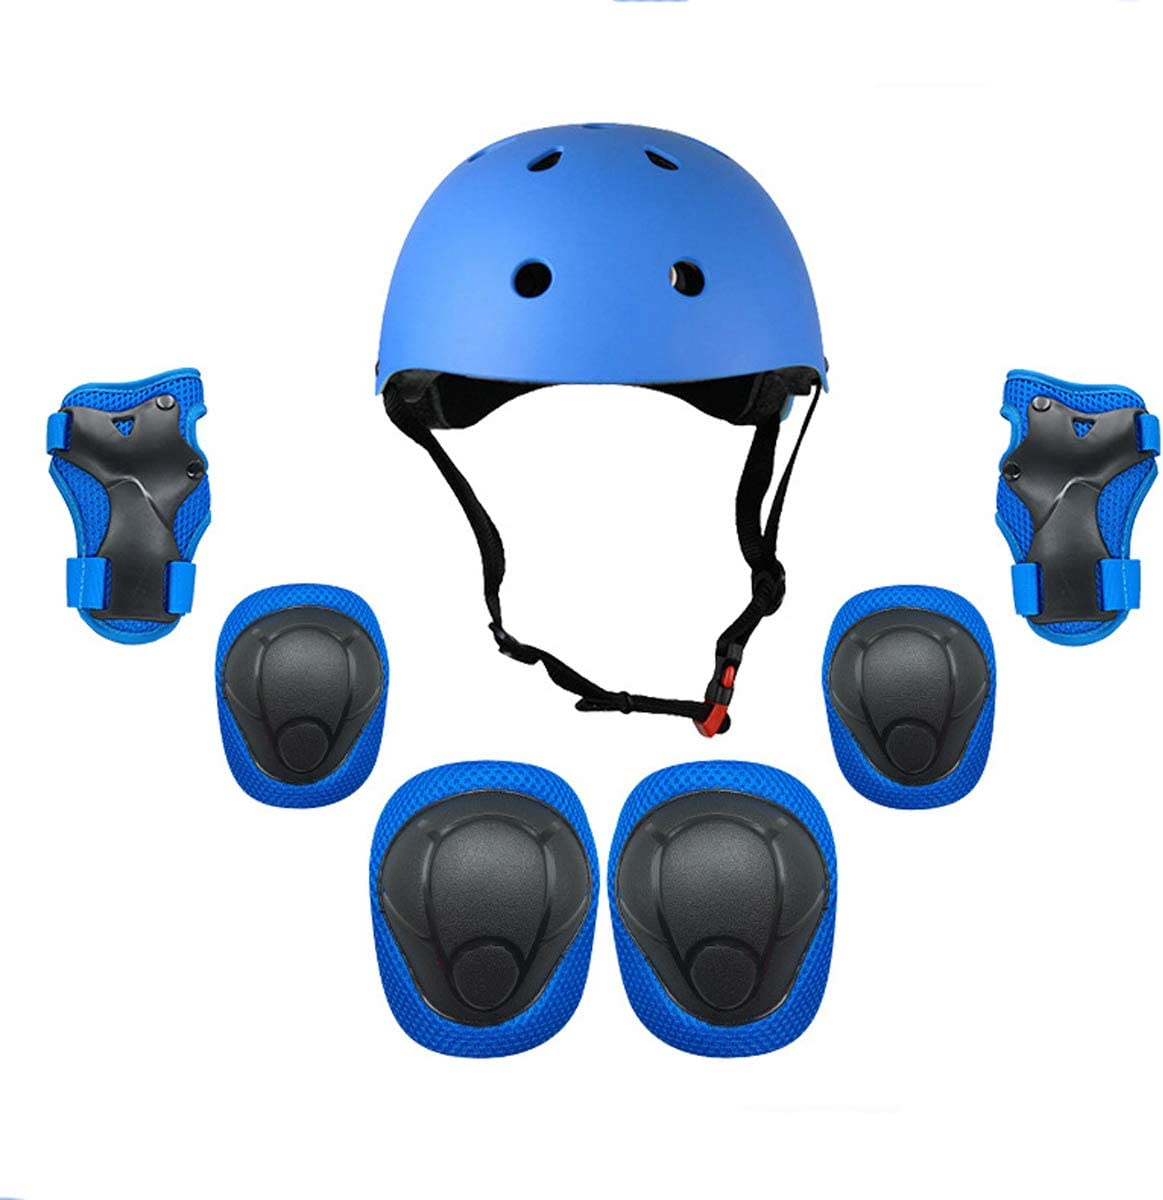 FOUJOY Sports Protective Gear Set Knee and Elbow Pads with Wrist Guards Adjustable Strap and Kids Helmet Suitable for 3.5-8 Years Old Children Skateboard Scooter Roller 7 Packs Bicycle